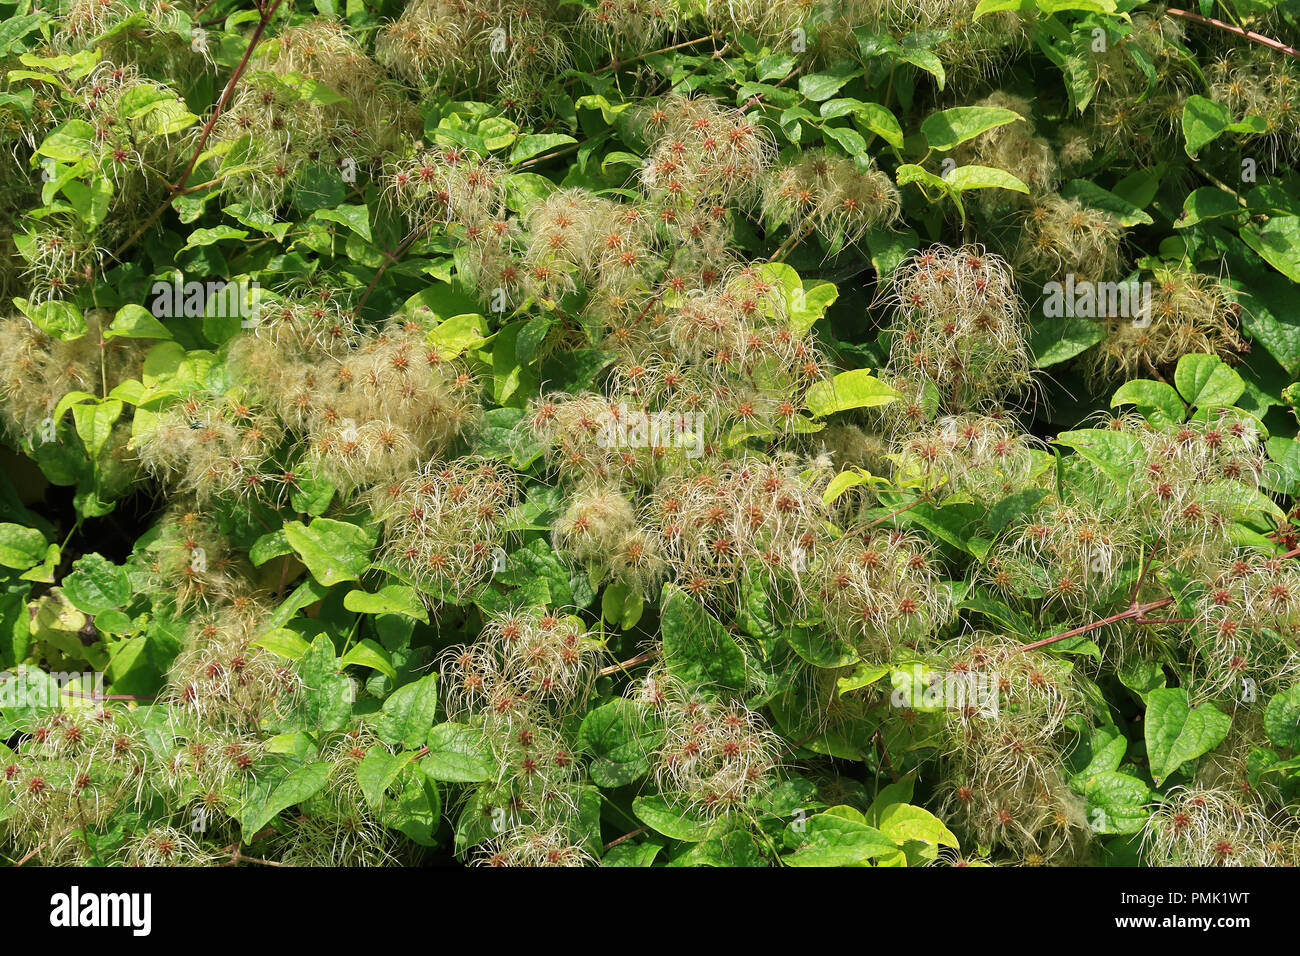 Old mans beard also known as Clematis Vitalba - Stock Image